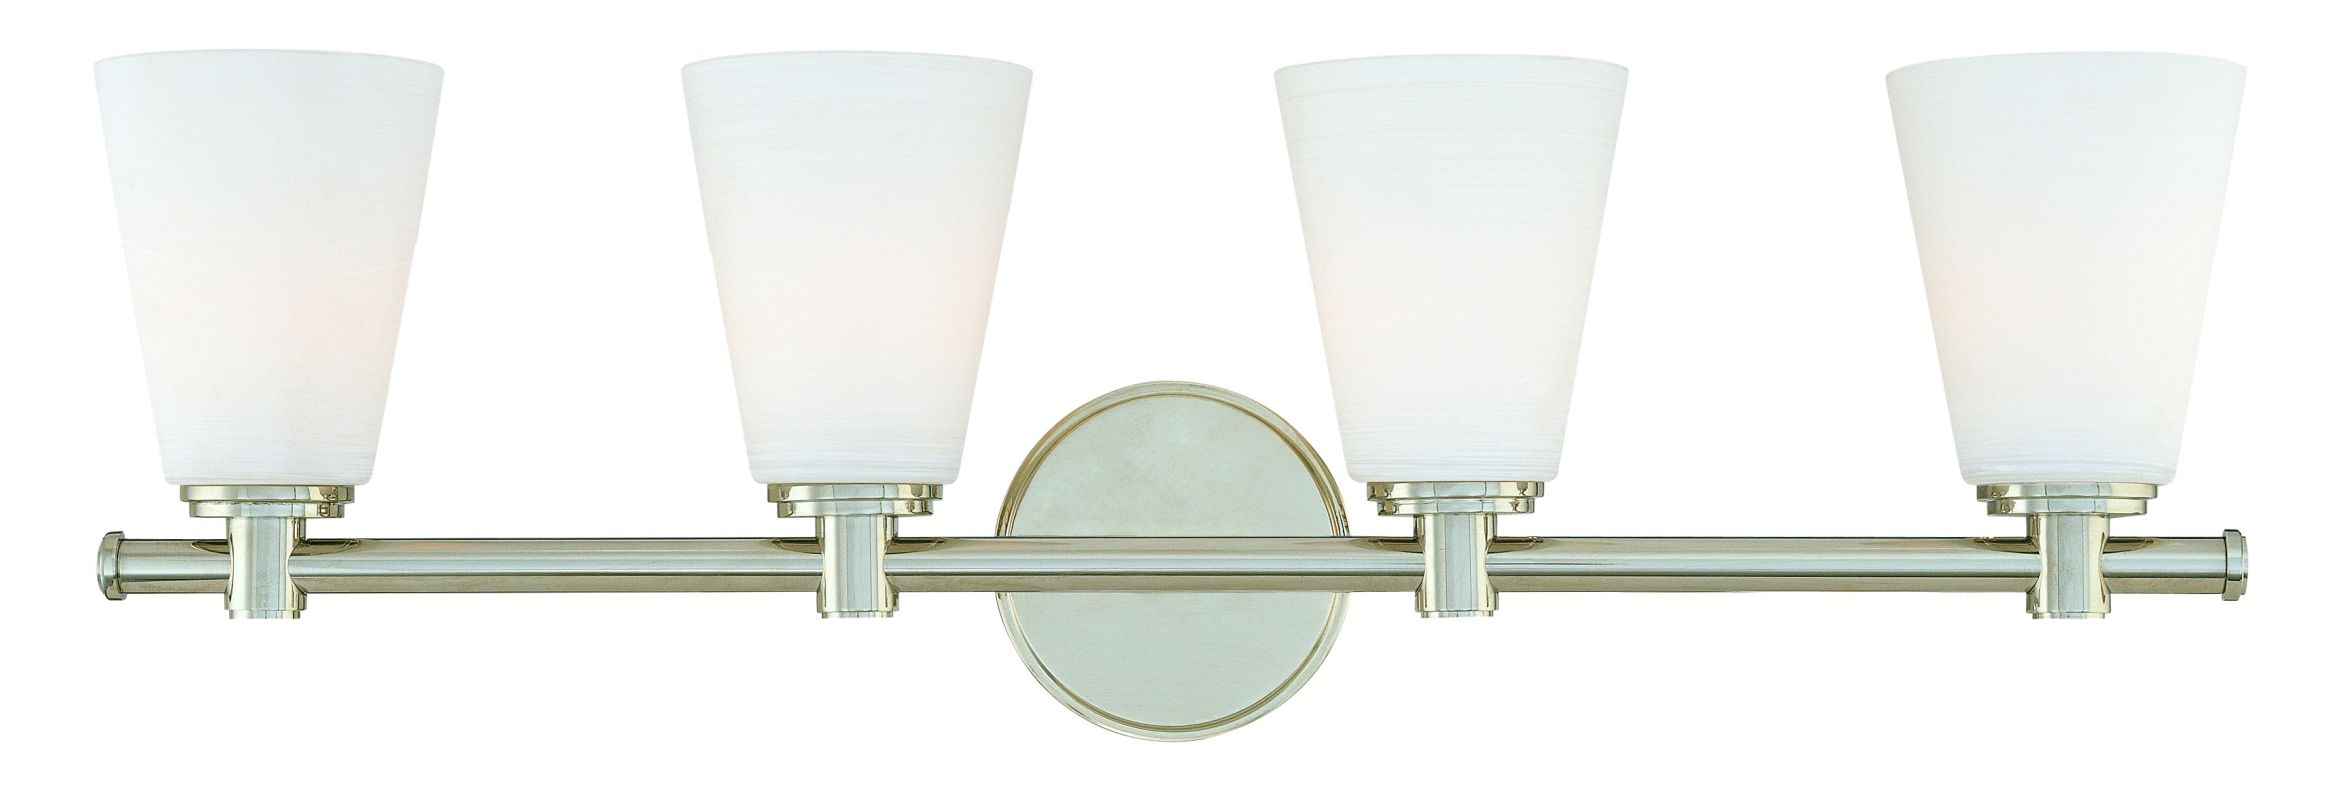 Hudson Valley Lighting 1844 Four Light Wall Sconce from the Garland